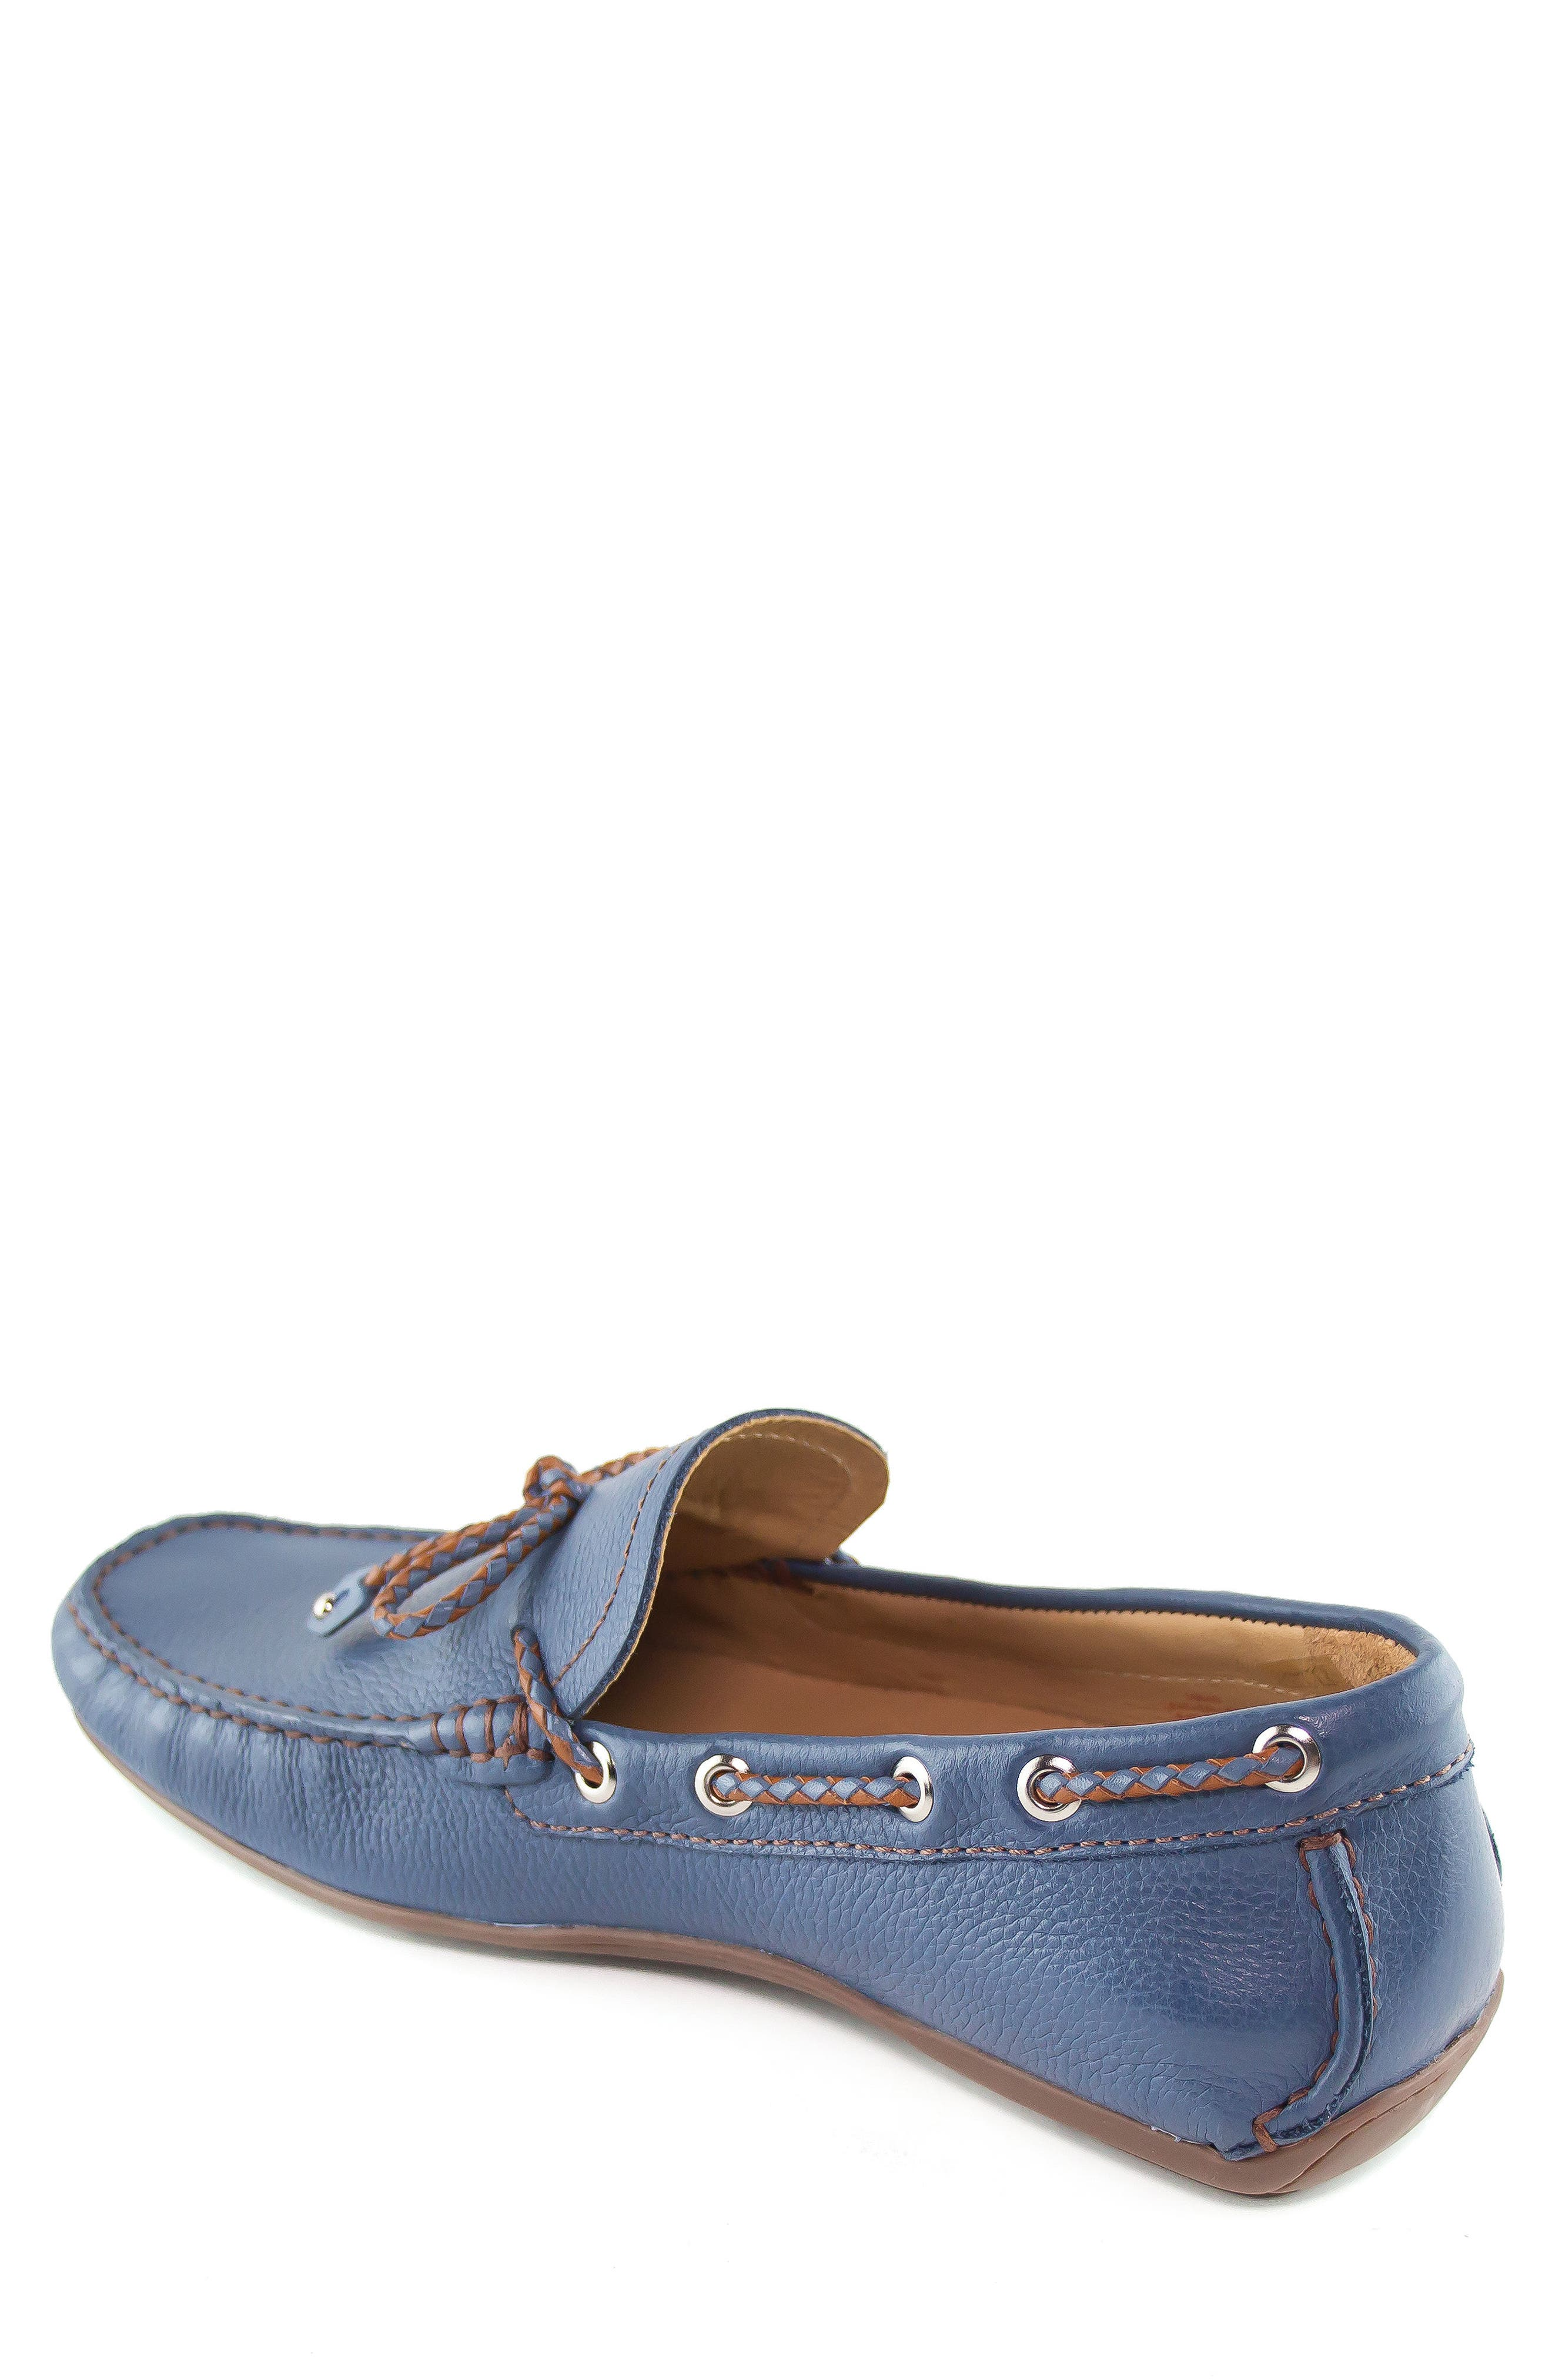 Alternate Image 2  - Marc Joseph New York 'Cypress' Moccasin (Men)